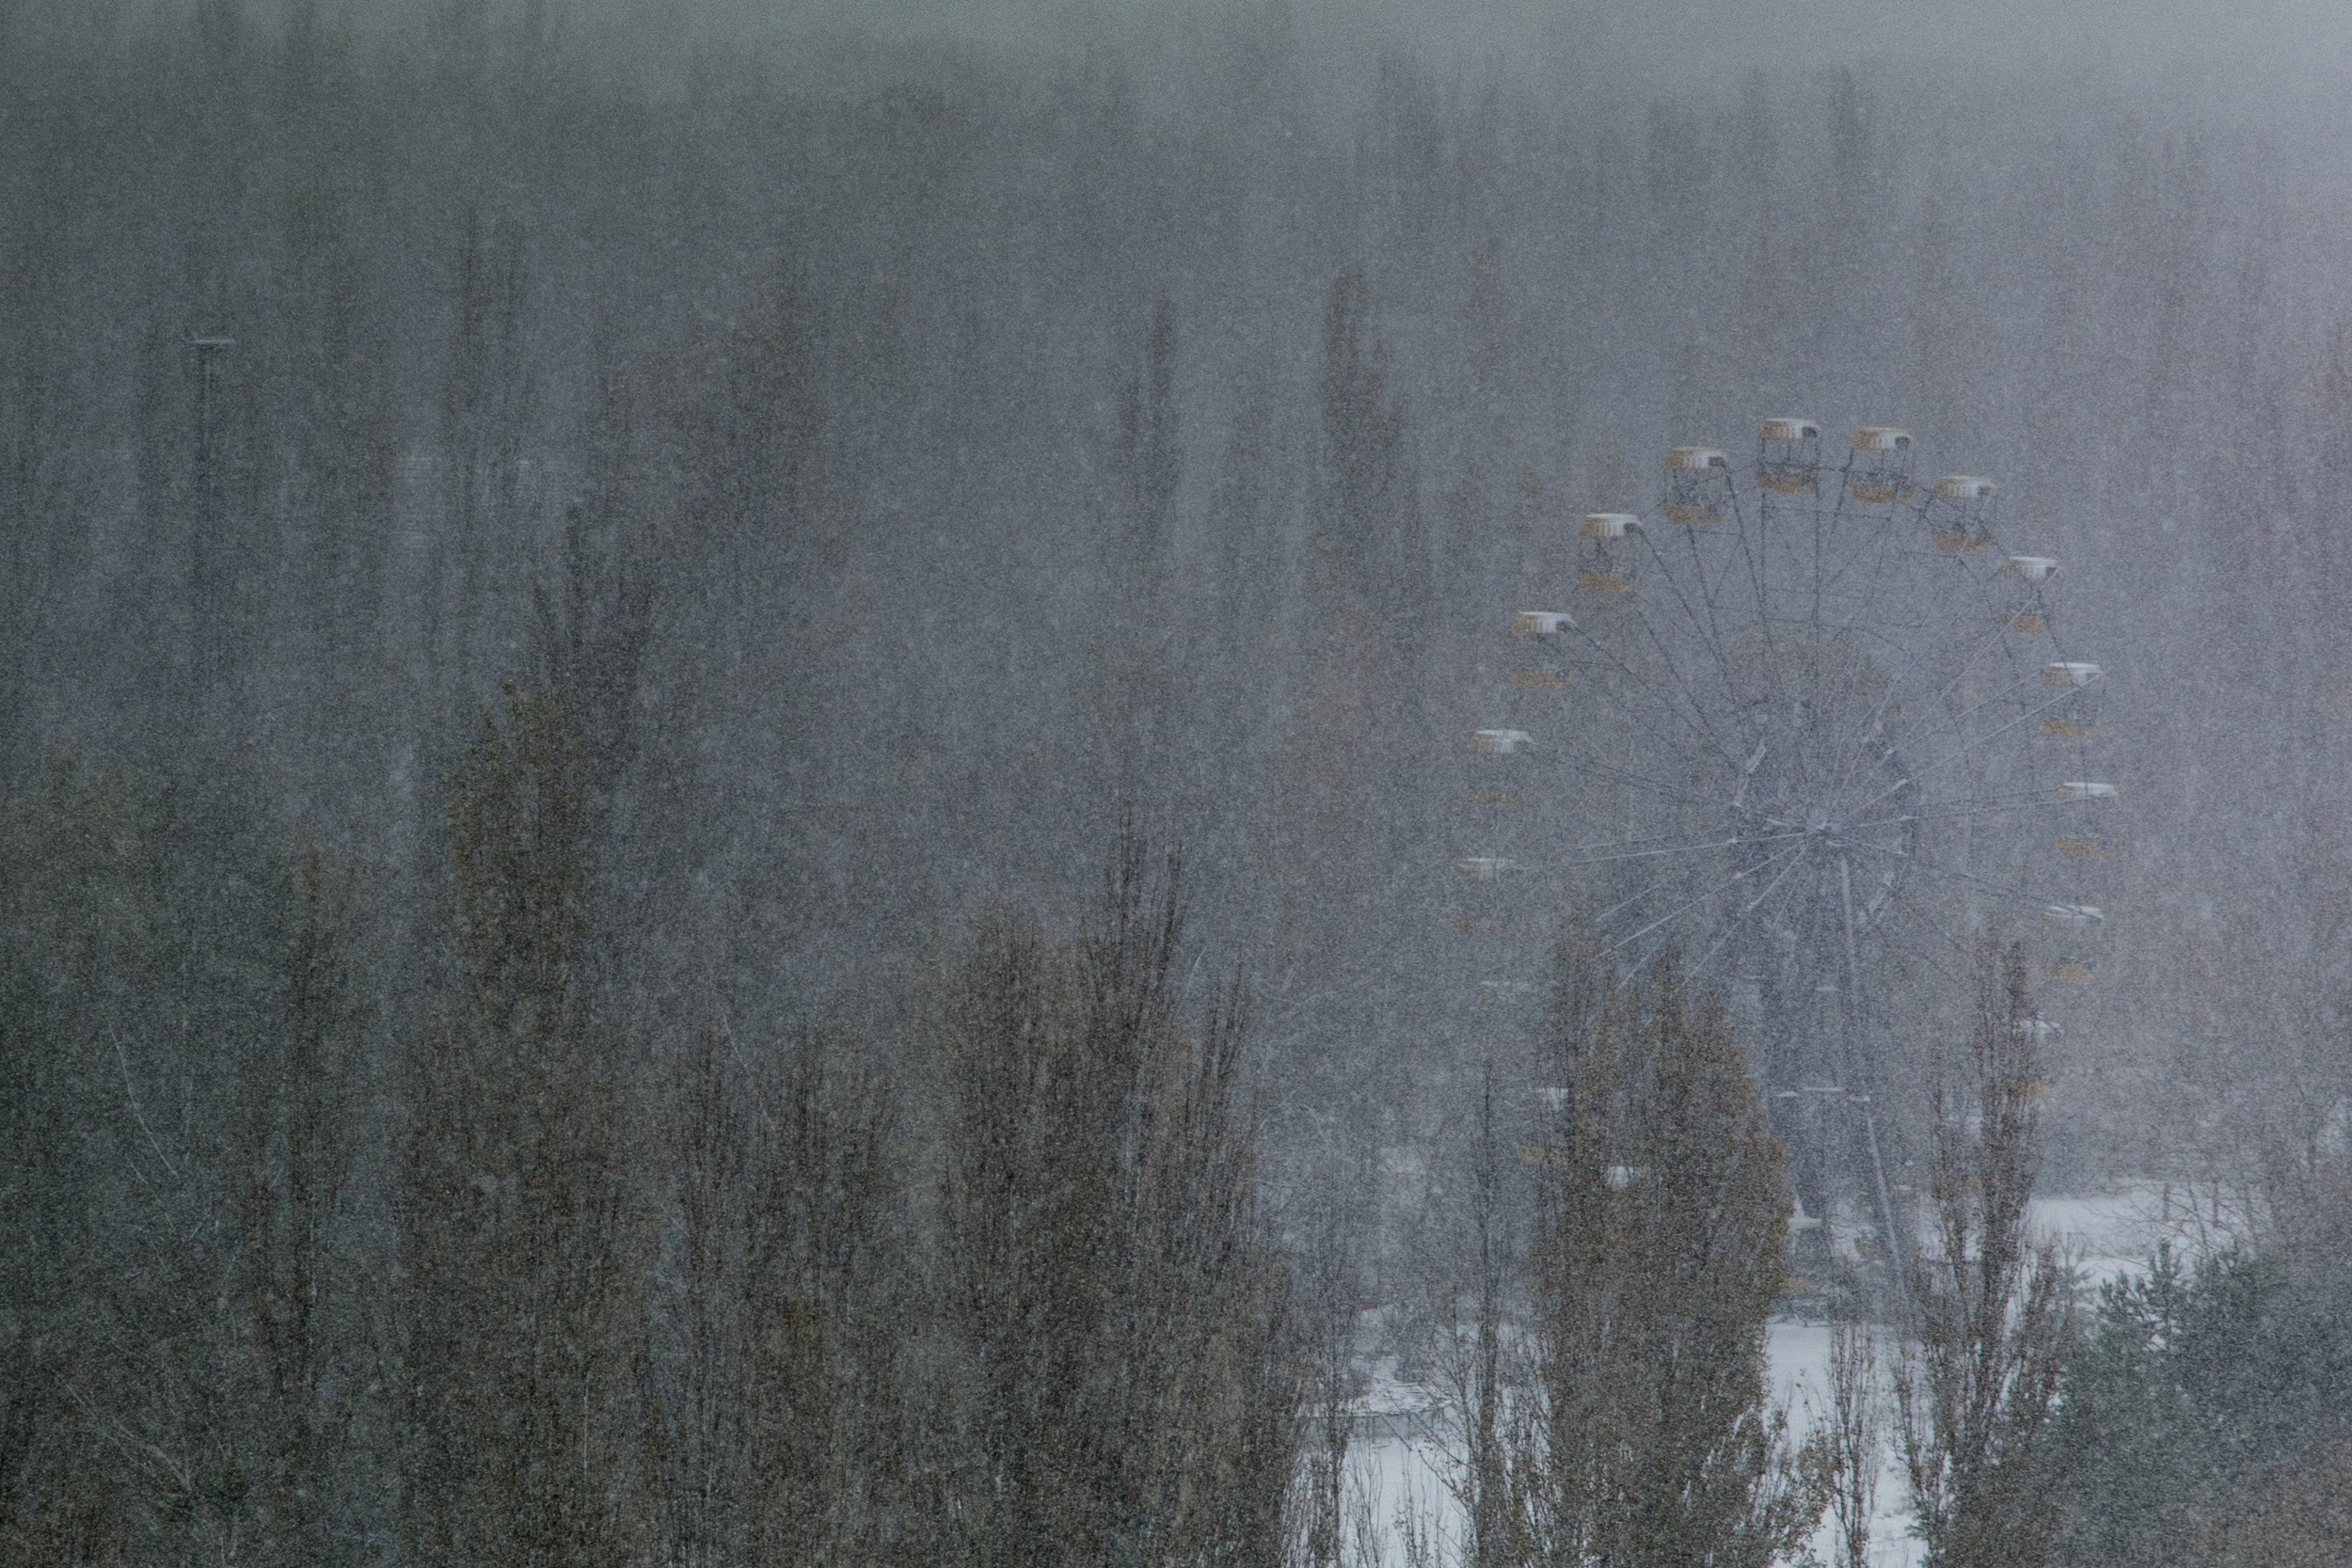 This abandoned Ferris wheel became a symbol of the ghost-town Prypyat. It never operated.